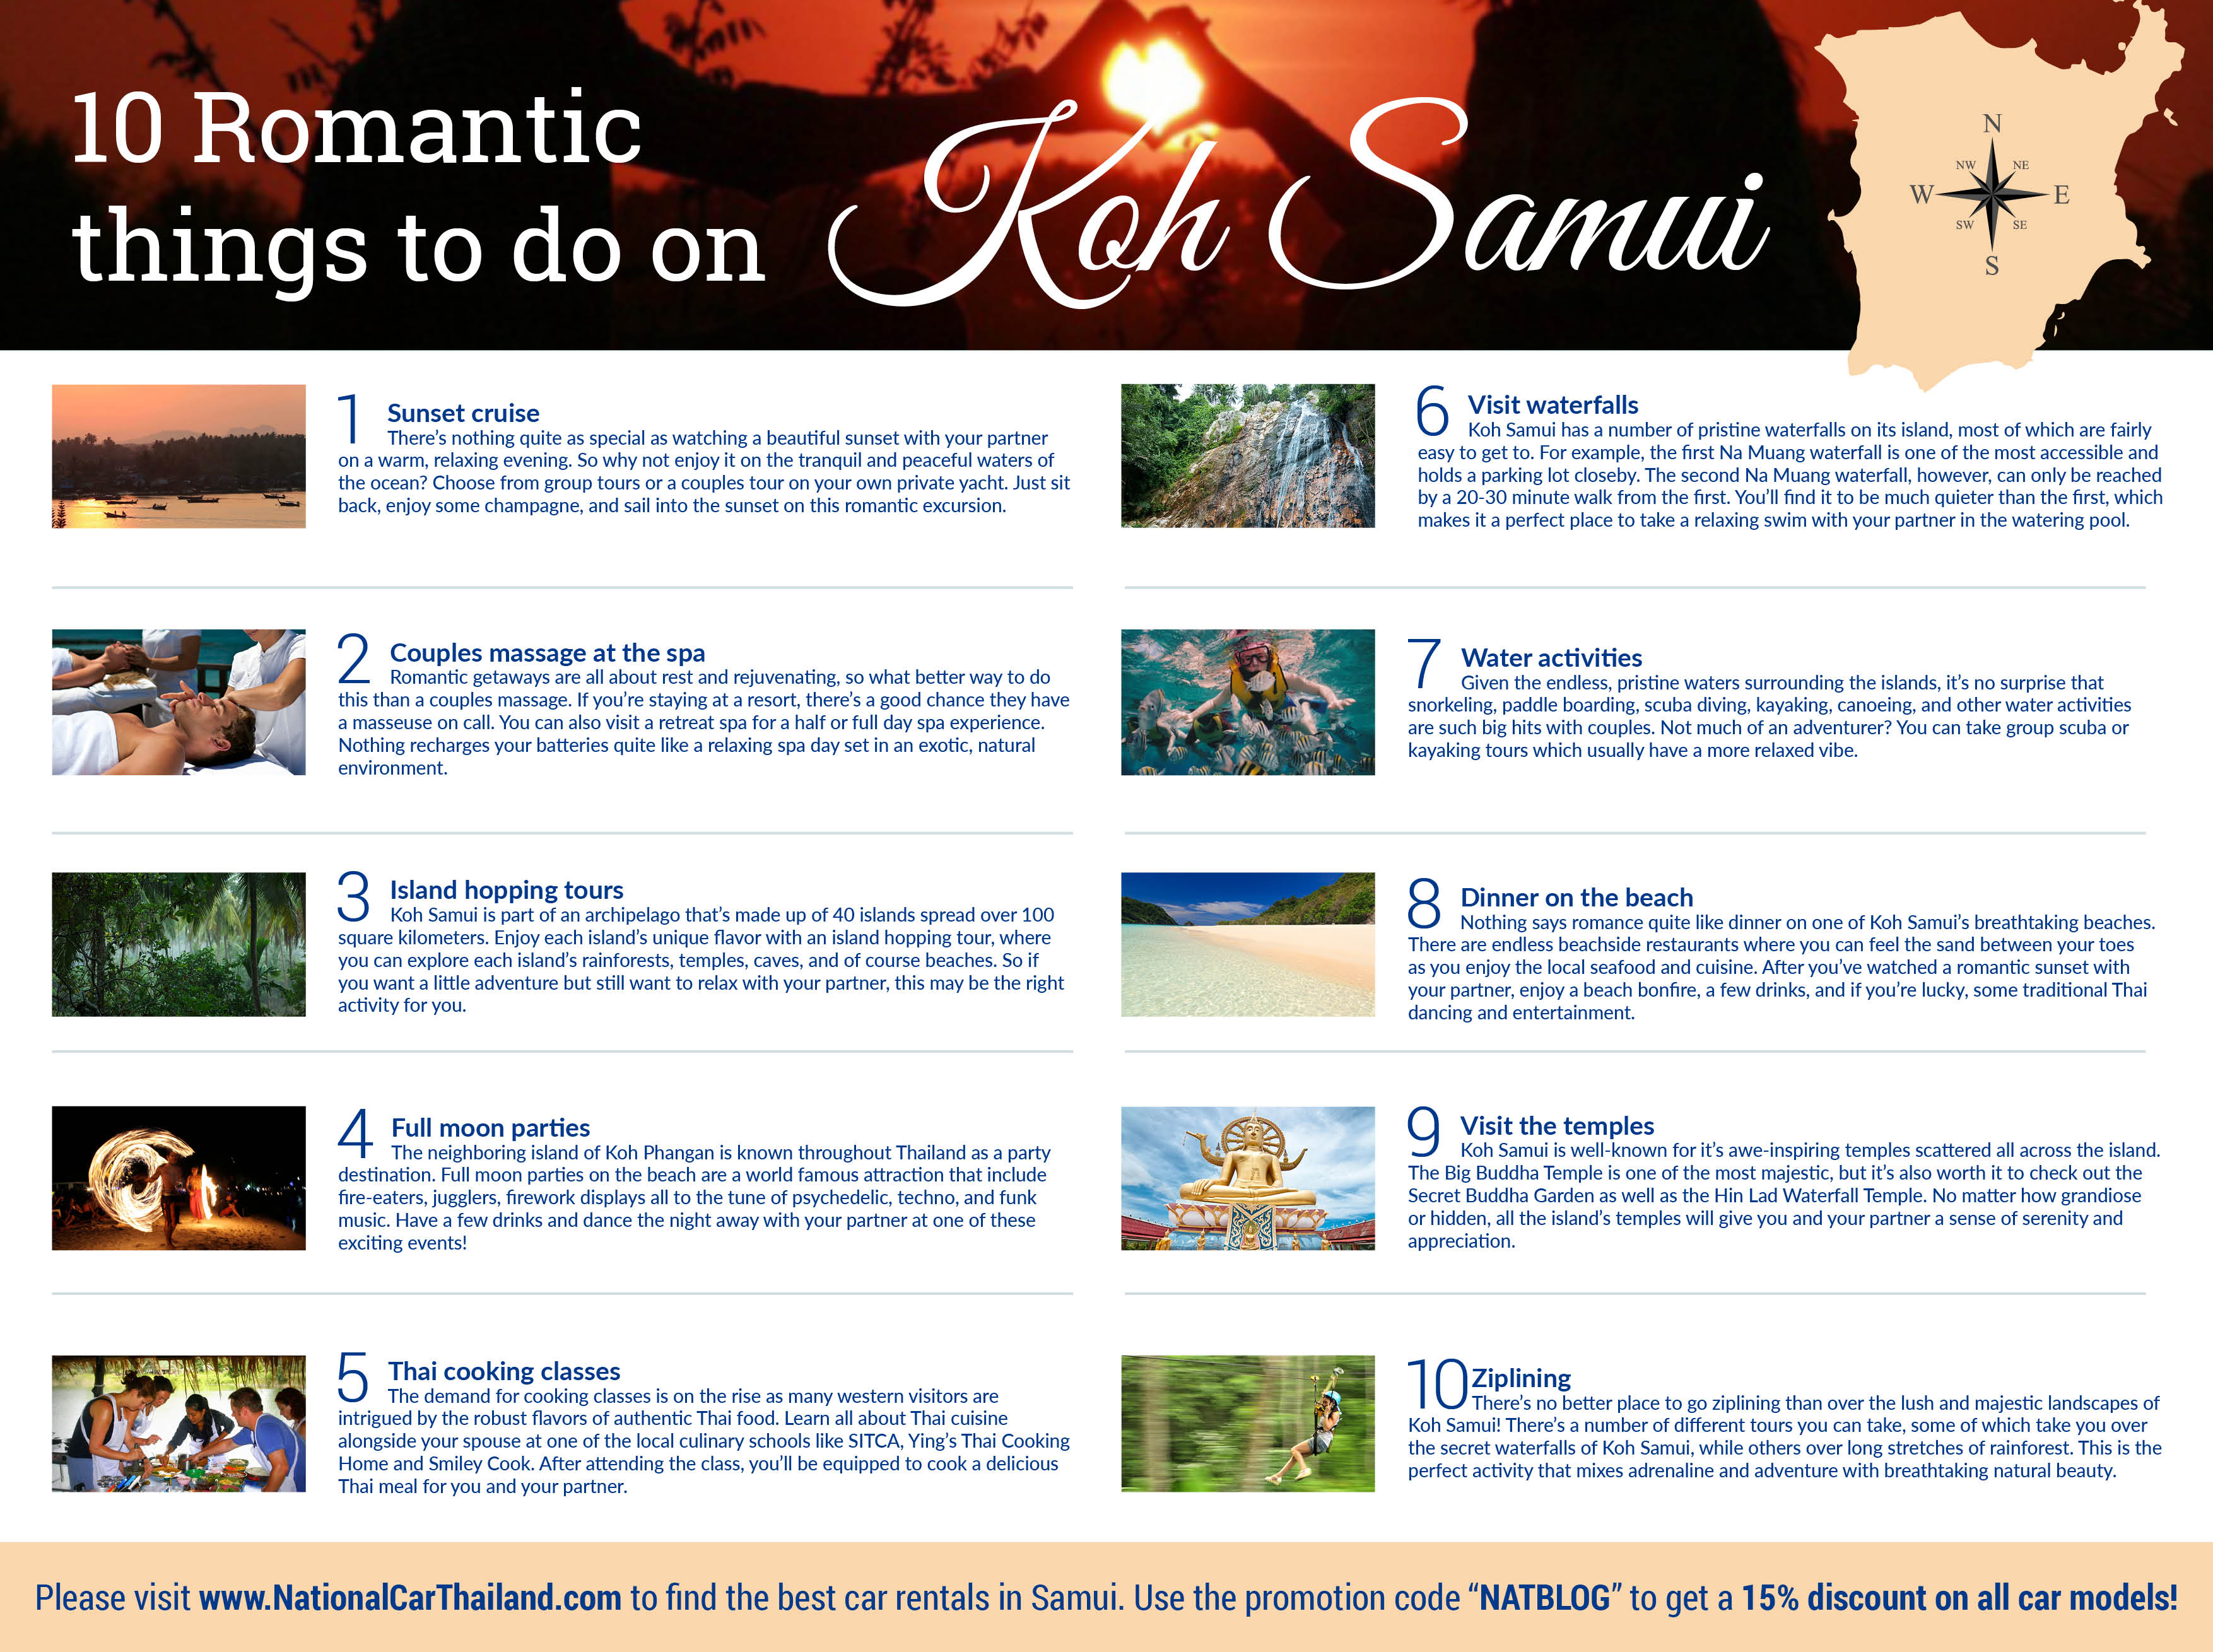 Dorable Romantic Ideas For Your Boyfriend At Home Pattern - Home ...